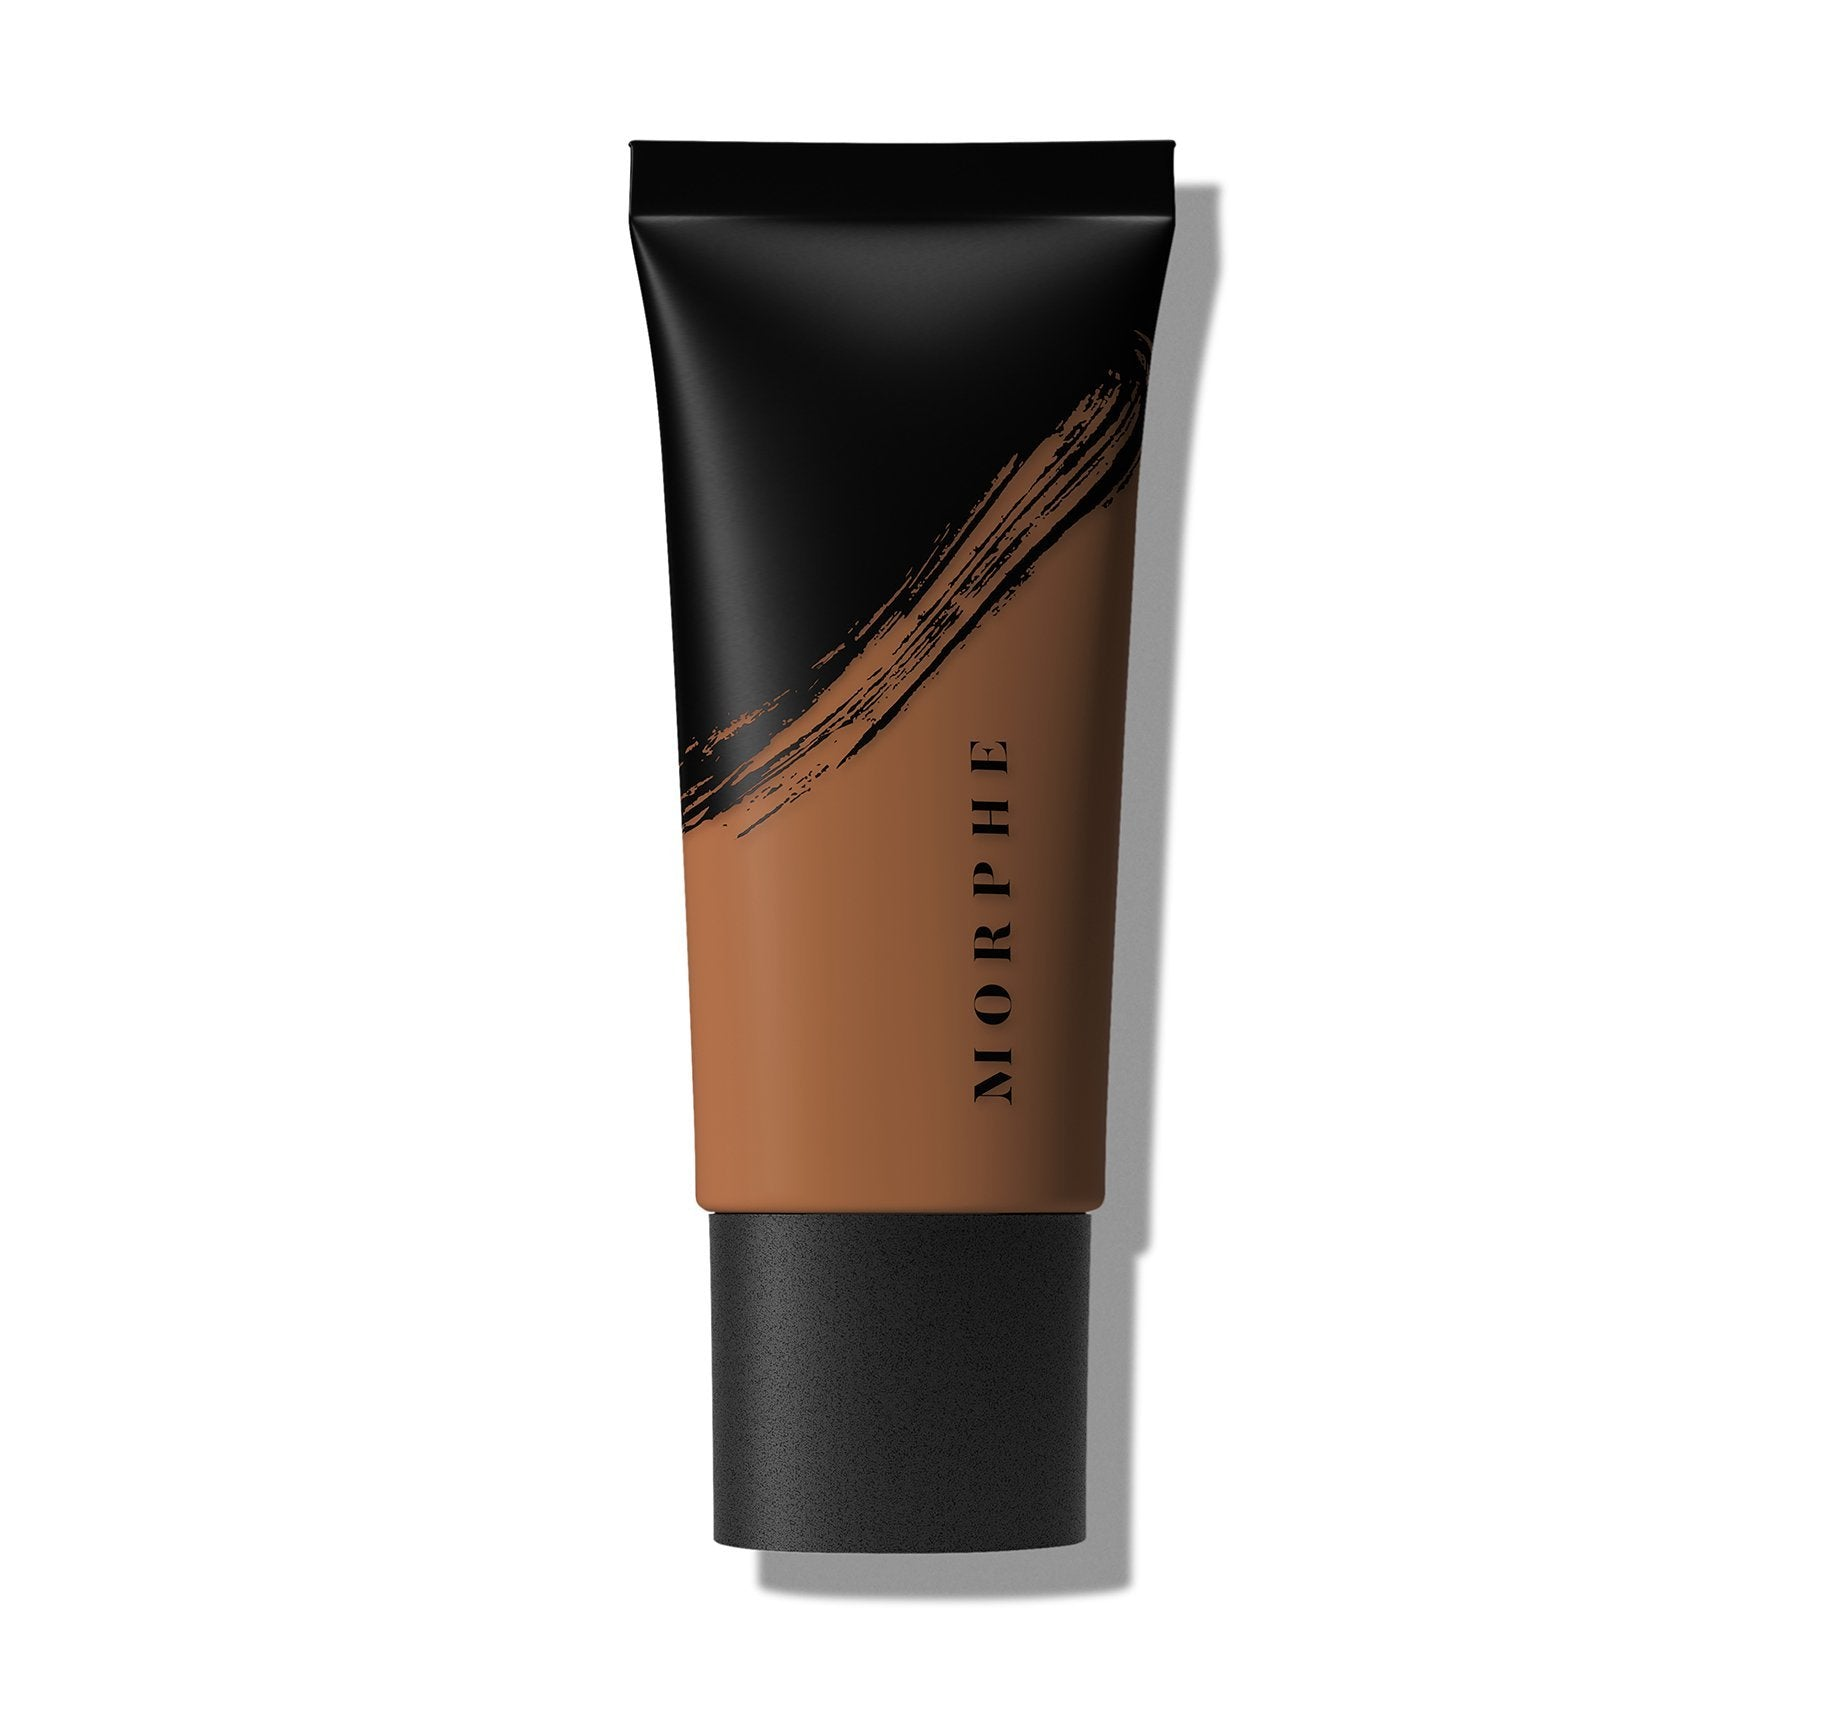 FLUIDITY FULL-COVERAGE FOUNDATION - F3.110, view larger image